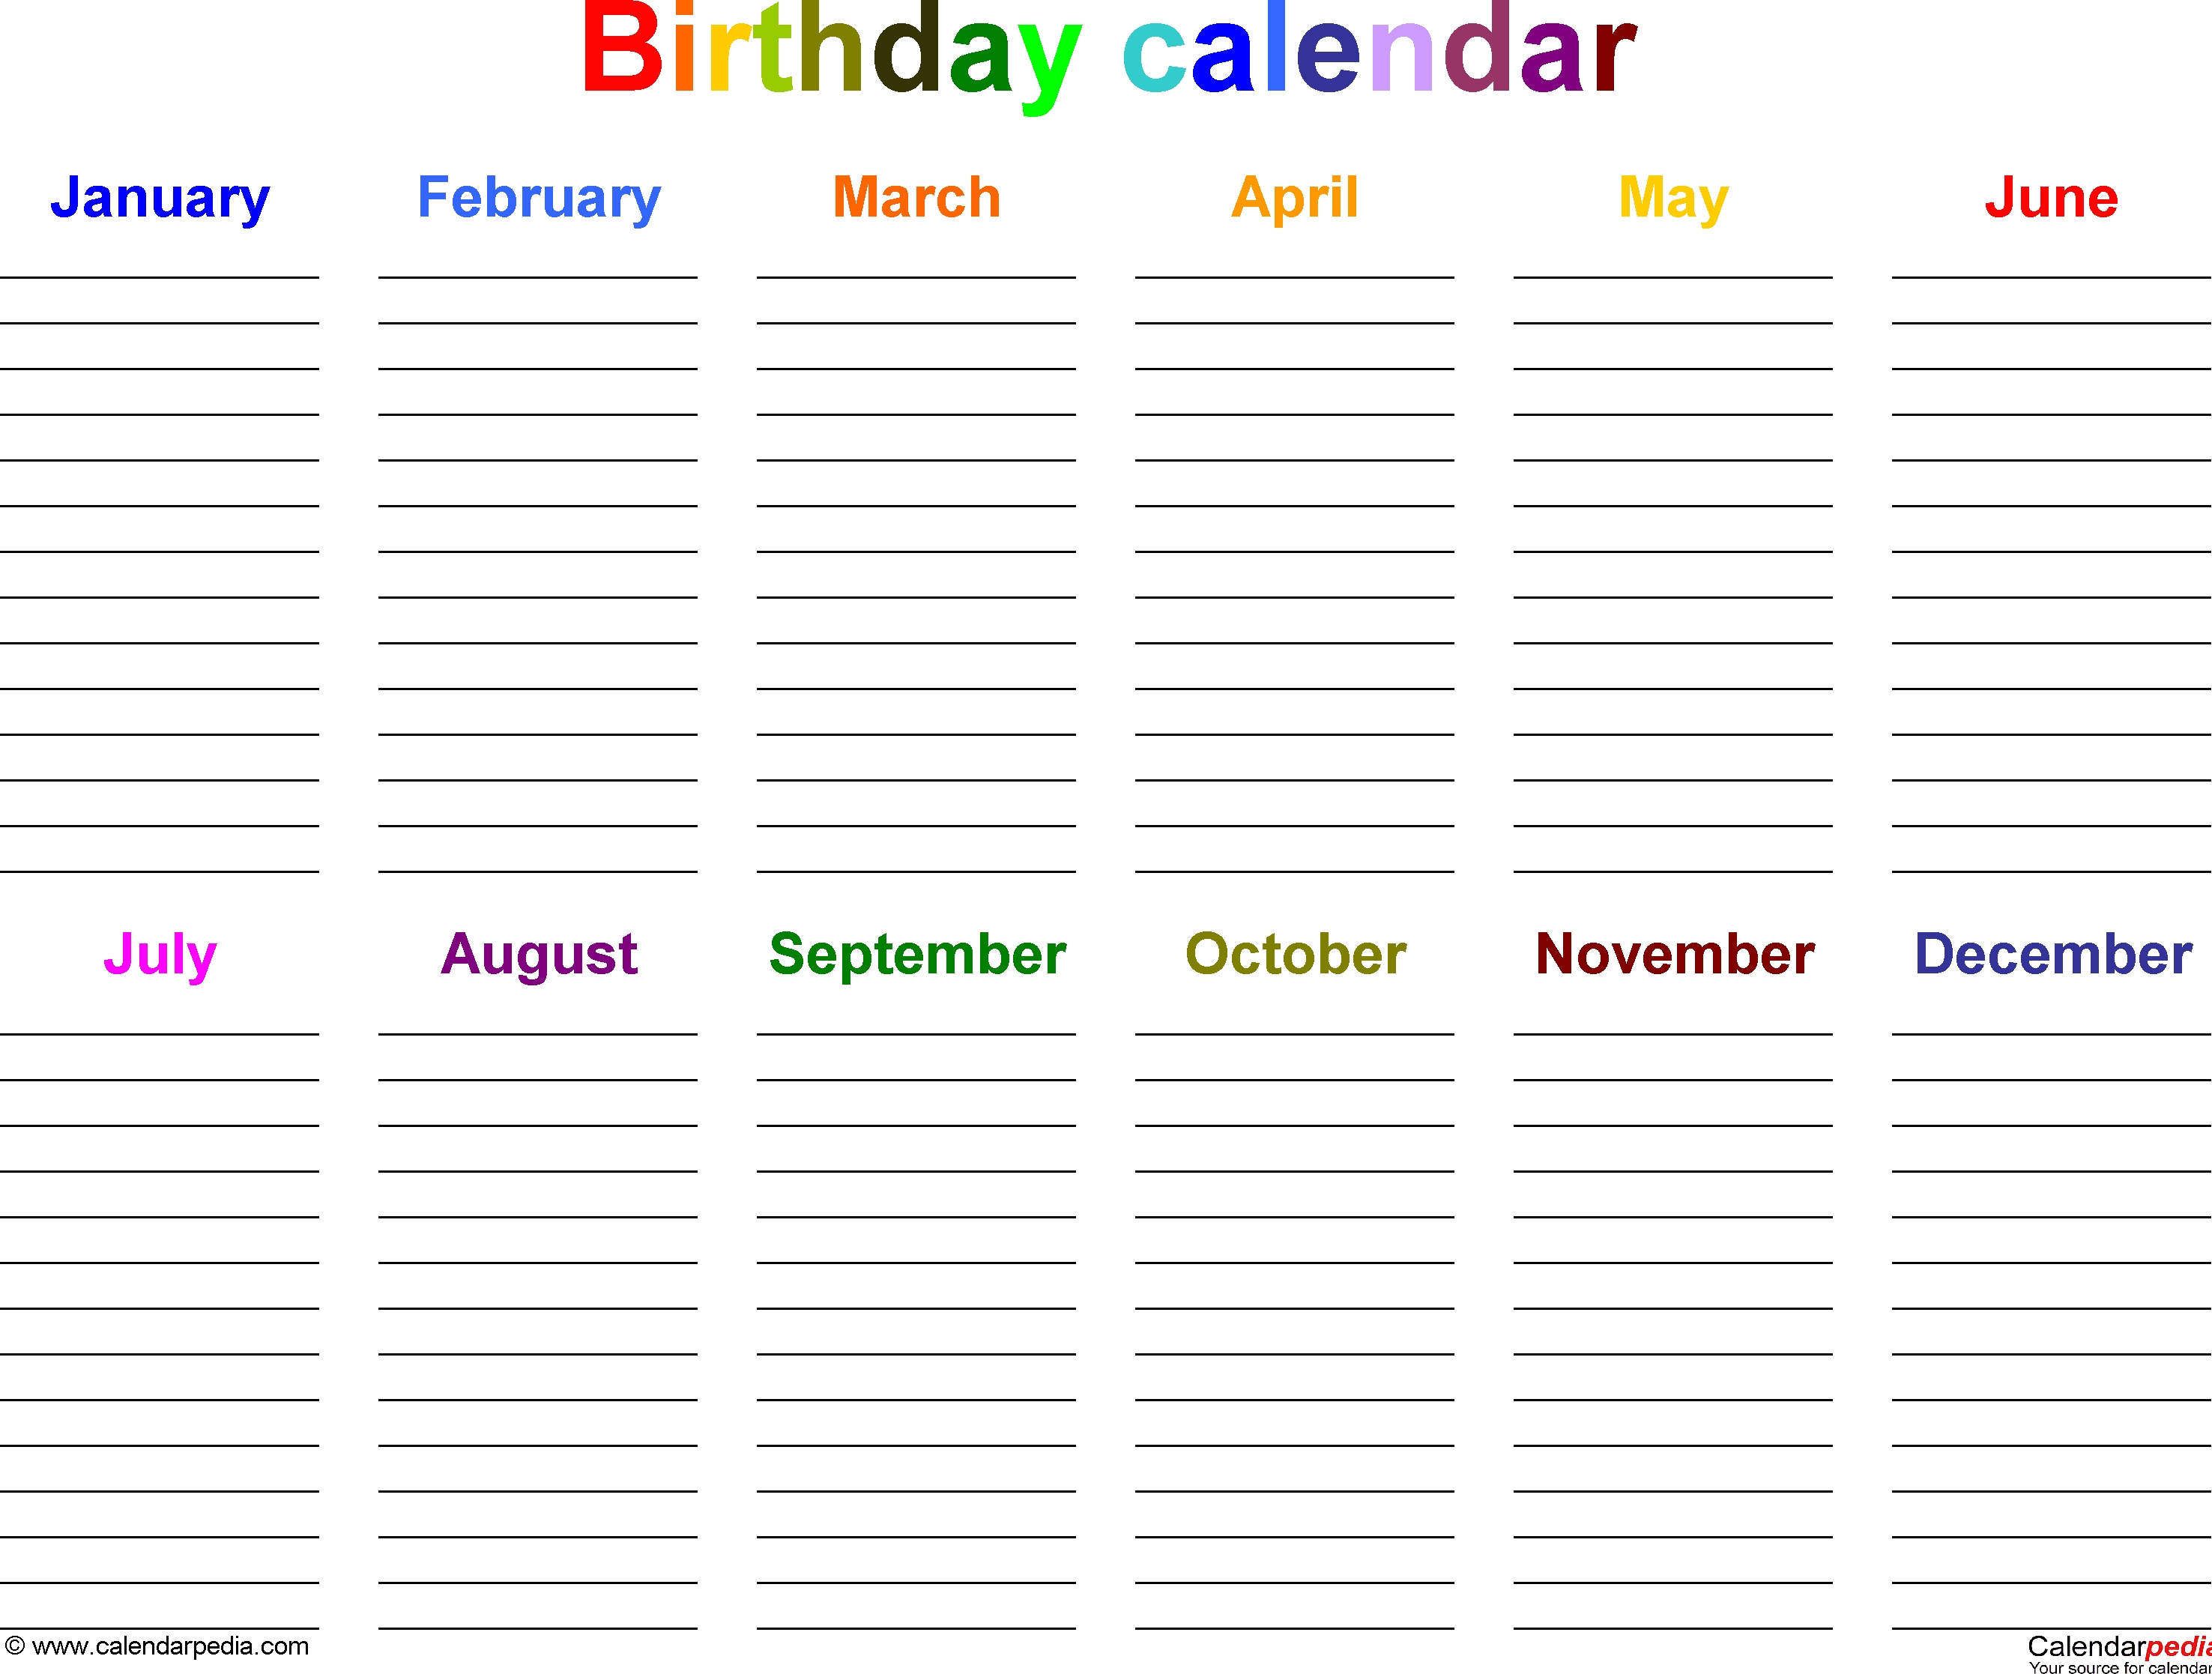 Excel Template For Birthday Calendar In Color (Landscape Exceptional Free Countdown Birthday Calendar Printable